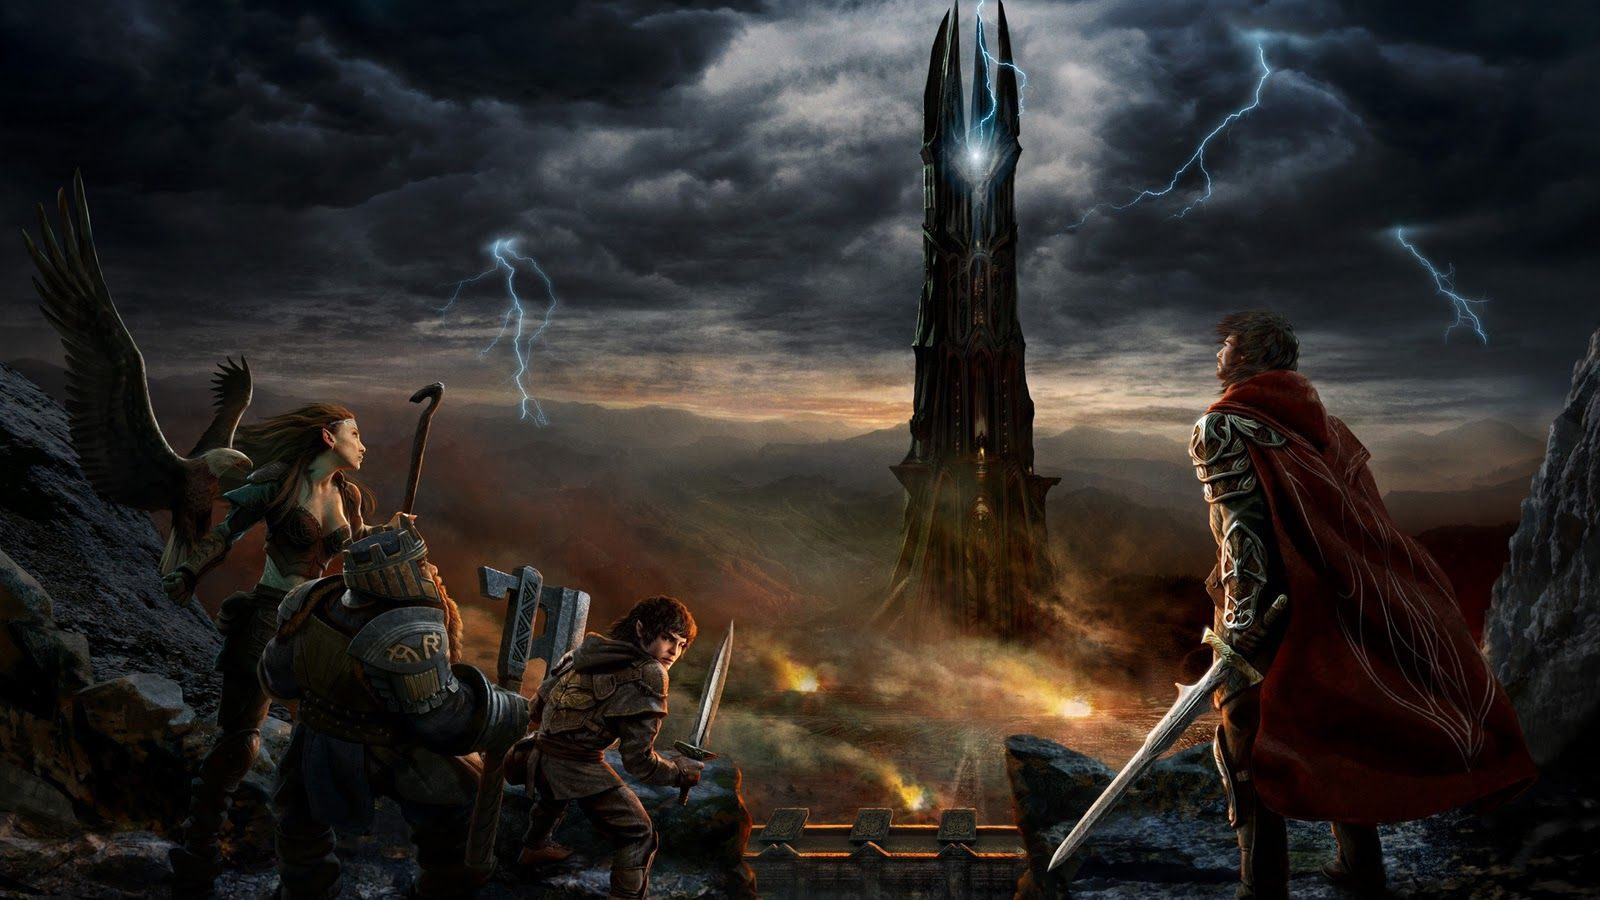 Free 3d Animated Wallpaper Thunder 3d Animated Wallpaper Tower 3d Animated Wallpaper 3d Animated Lord Of The Rings Shadow Of Mordor Lotr